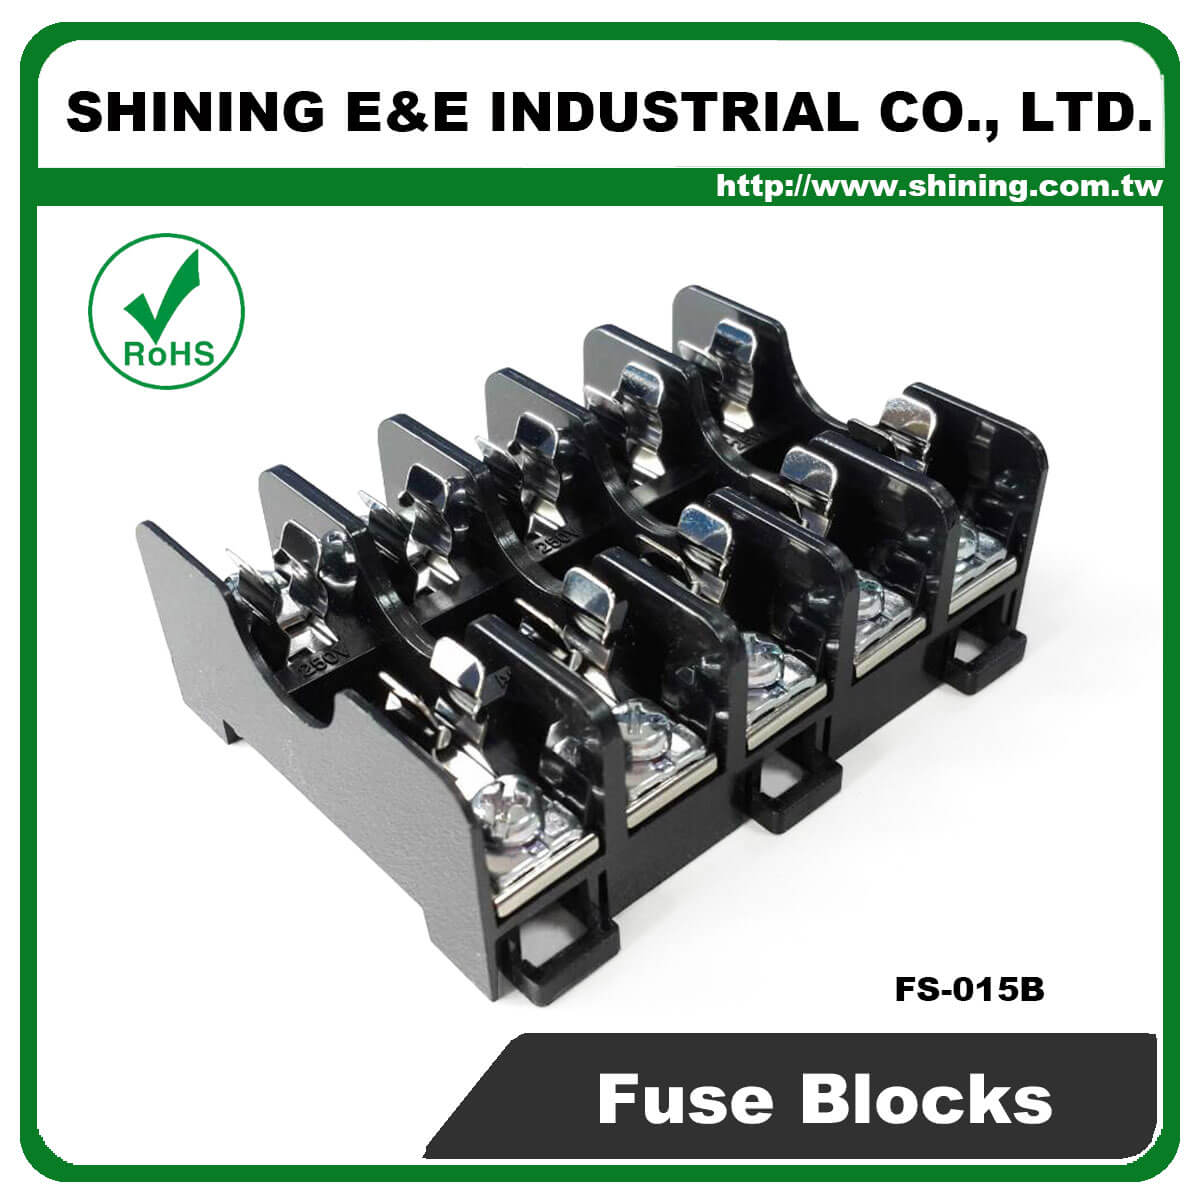 FS-015B For 6x30mm Fuse Din Rail Mounted 600V 10A 5 Way Fuse Block